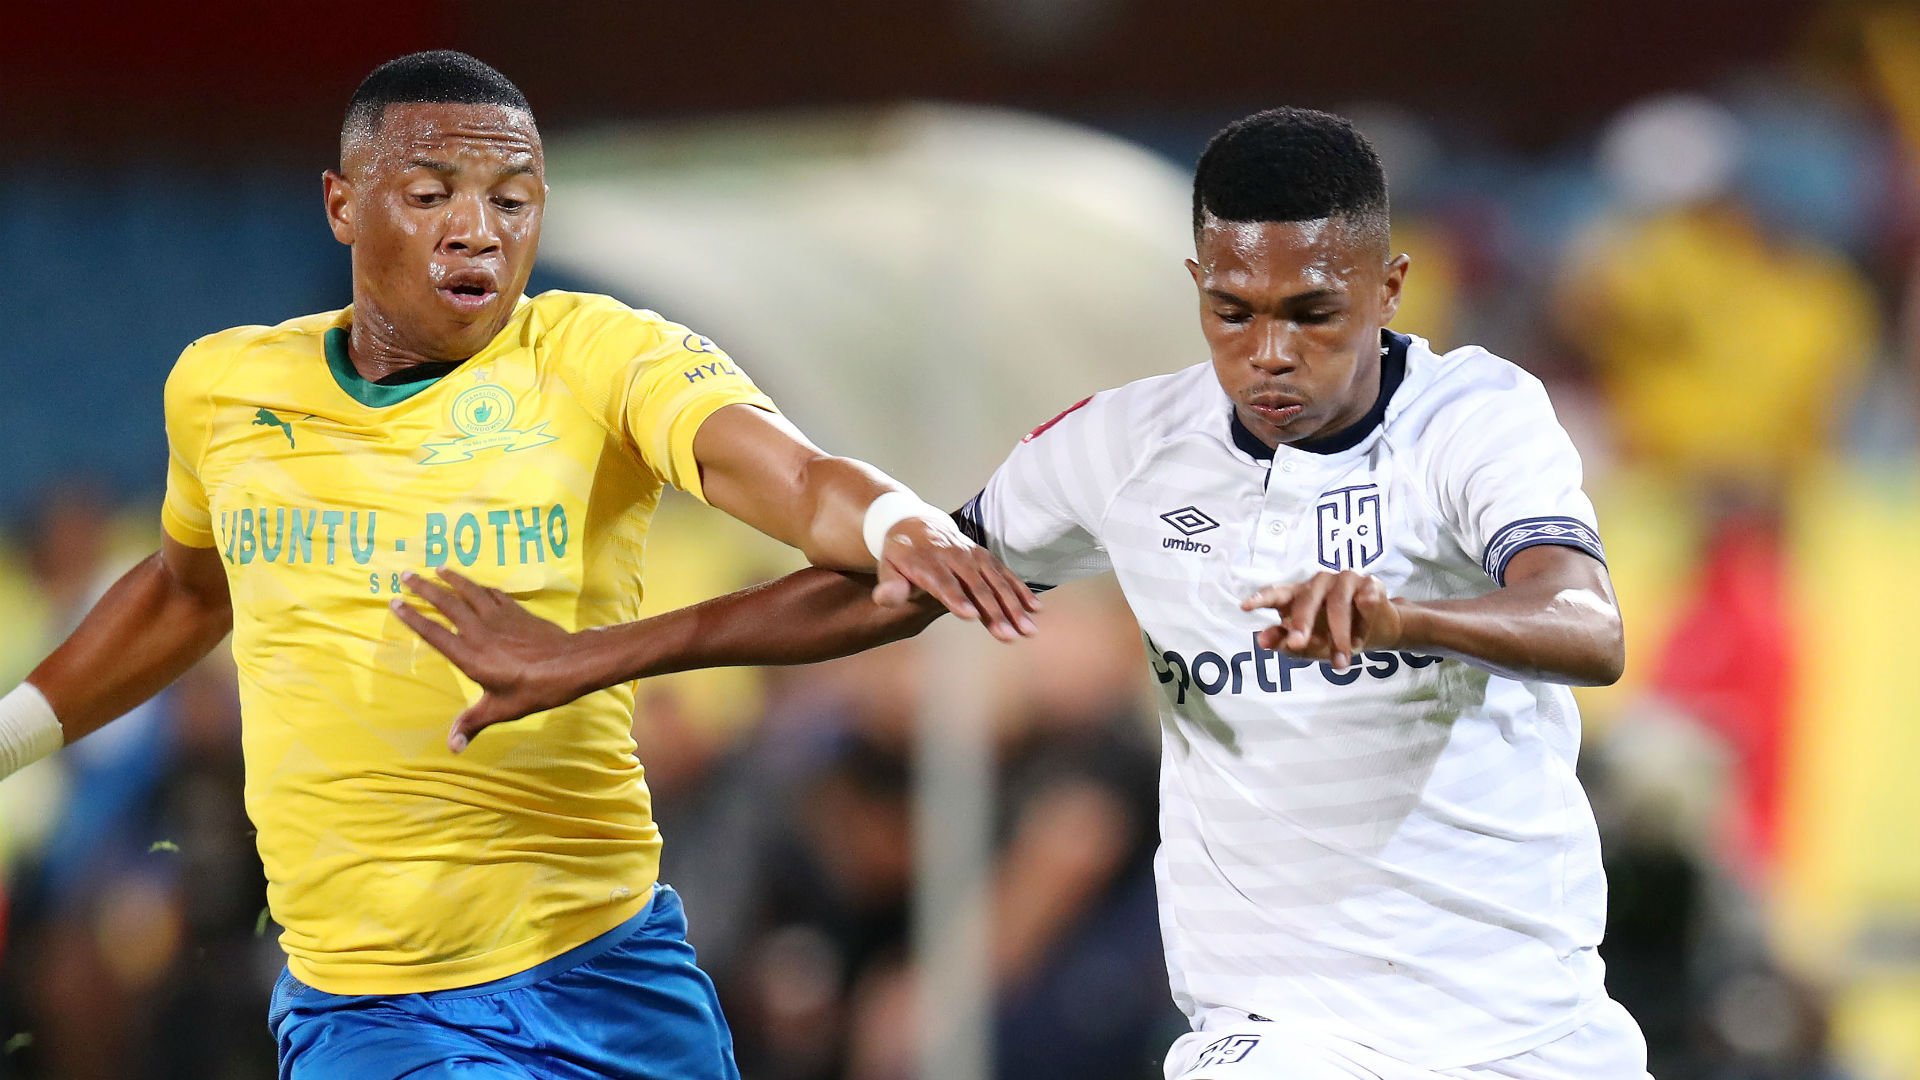 Andile Jali, Sundowns & Gift Links, Cape Town City, February 2019